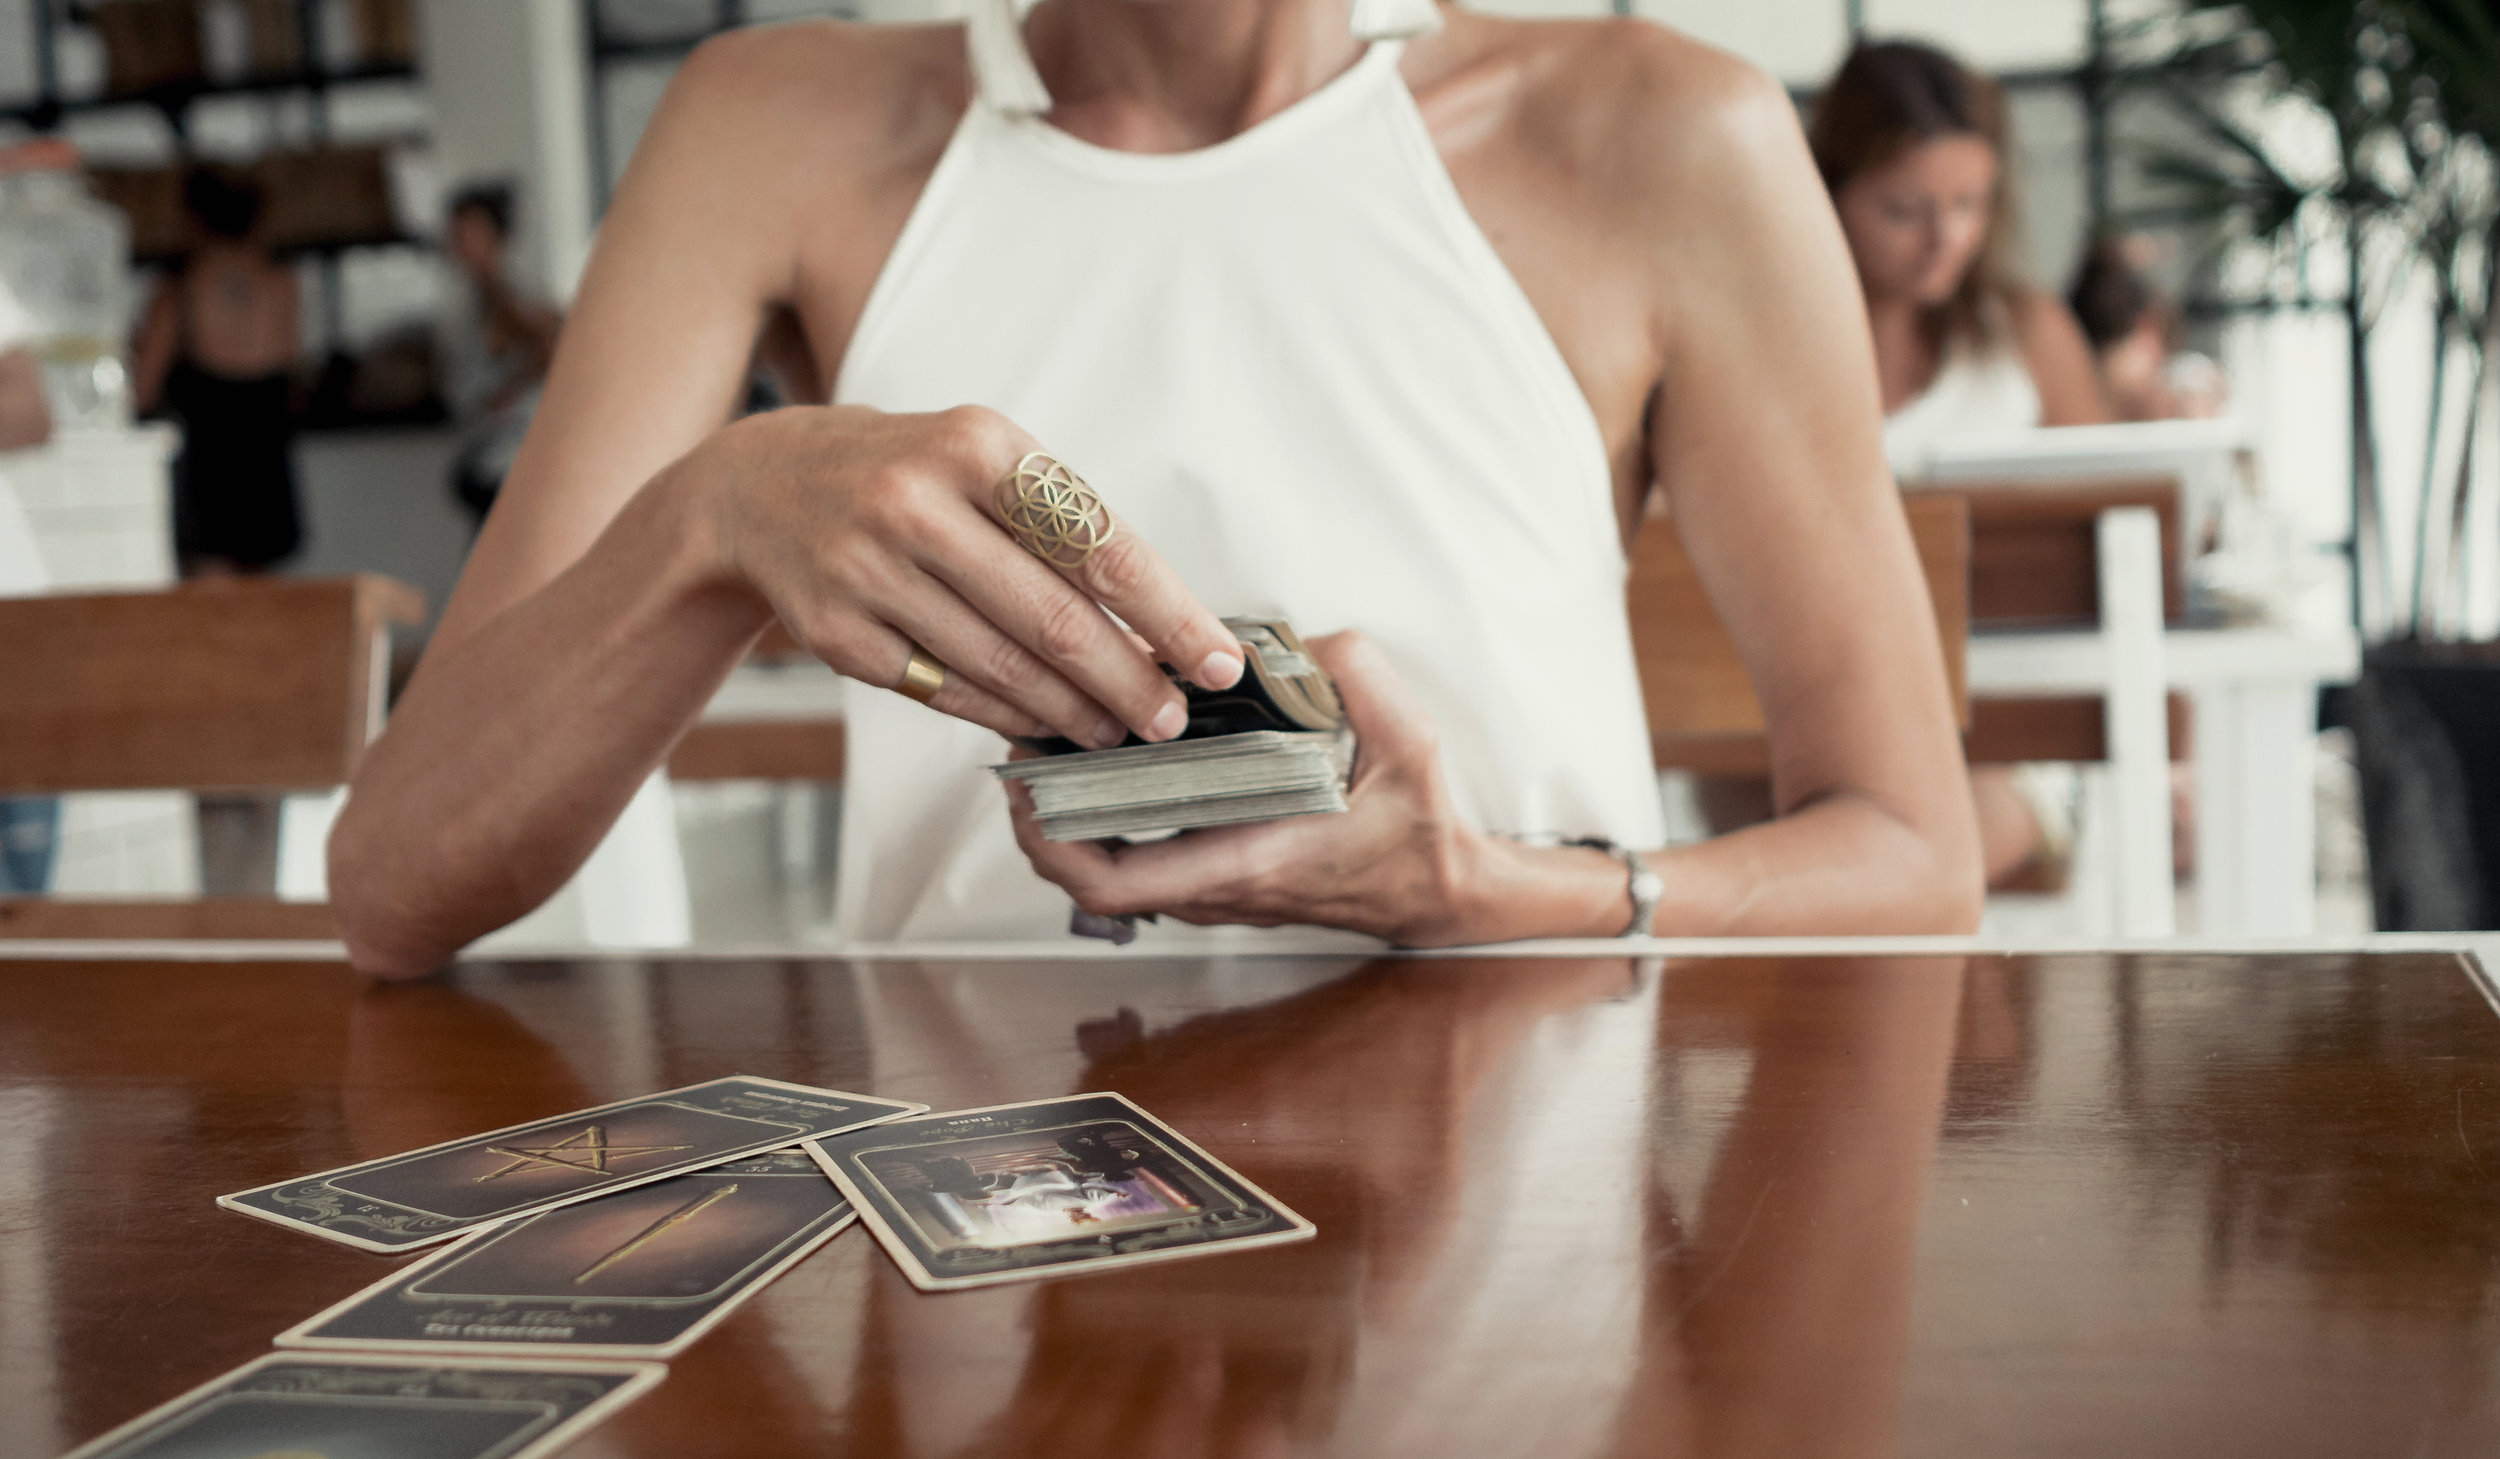 Five Techniques for Reading Larger Tarot Spreads - Here are five techniques to help you get the most out of larger tarot spreads.